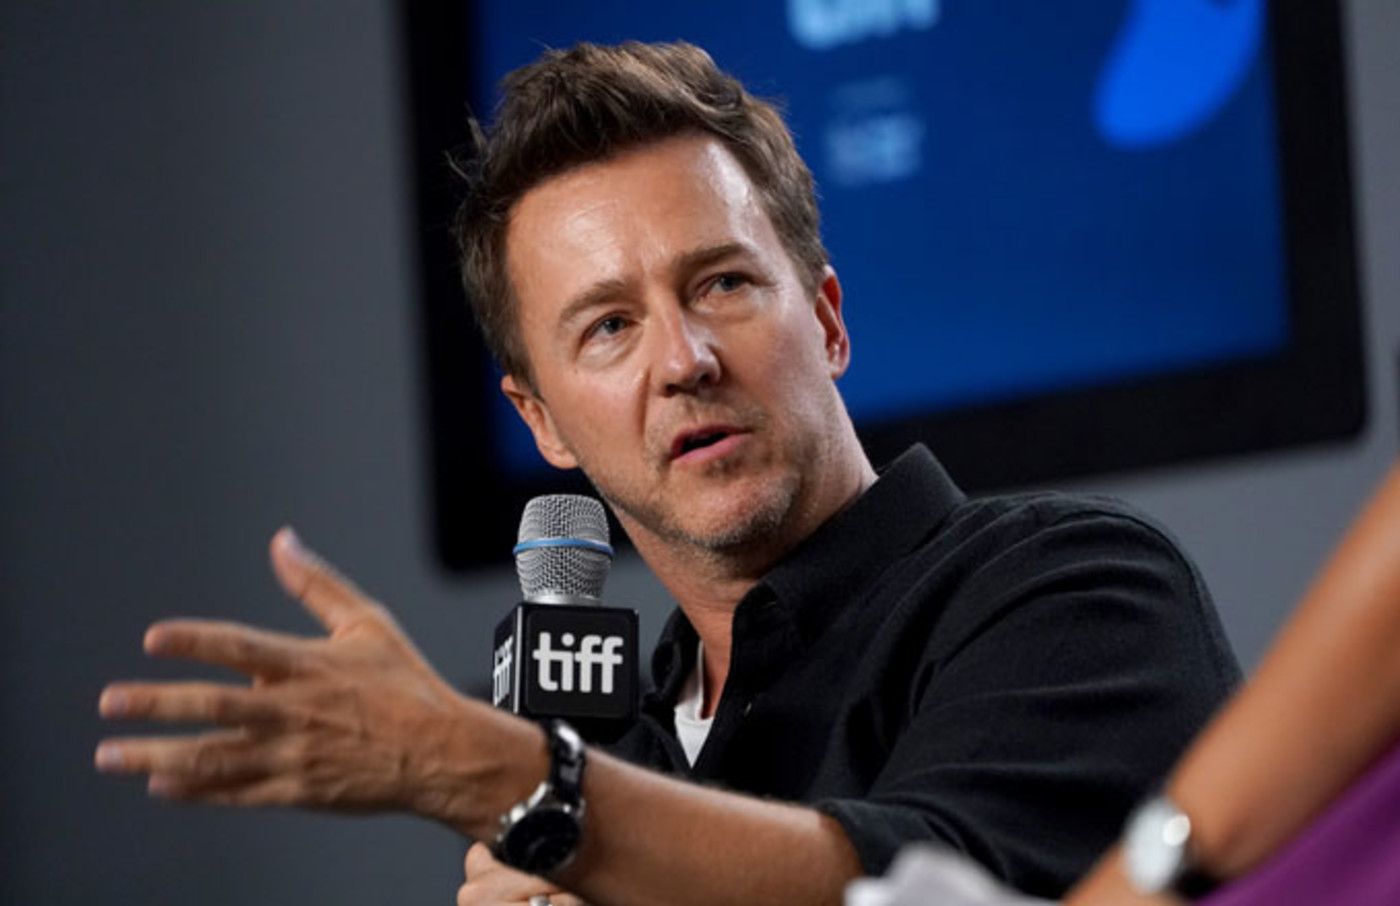 Edward Norton Tiff Series